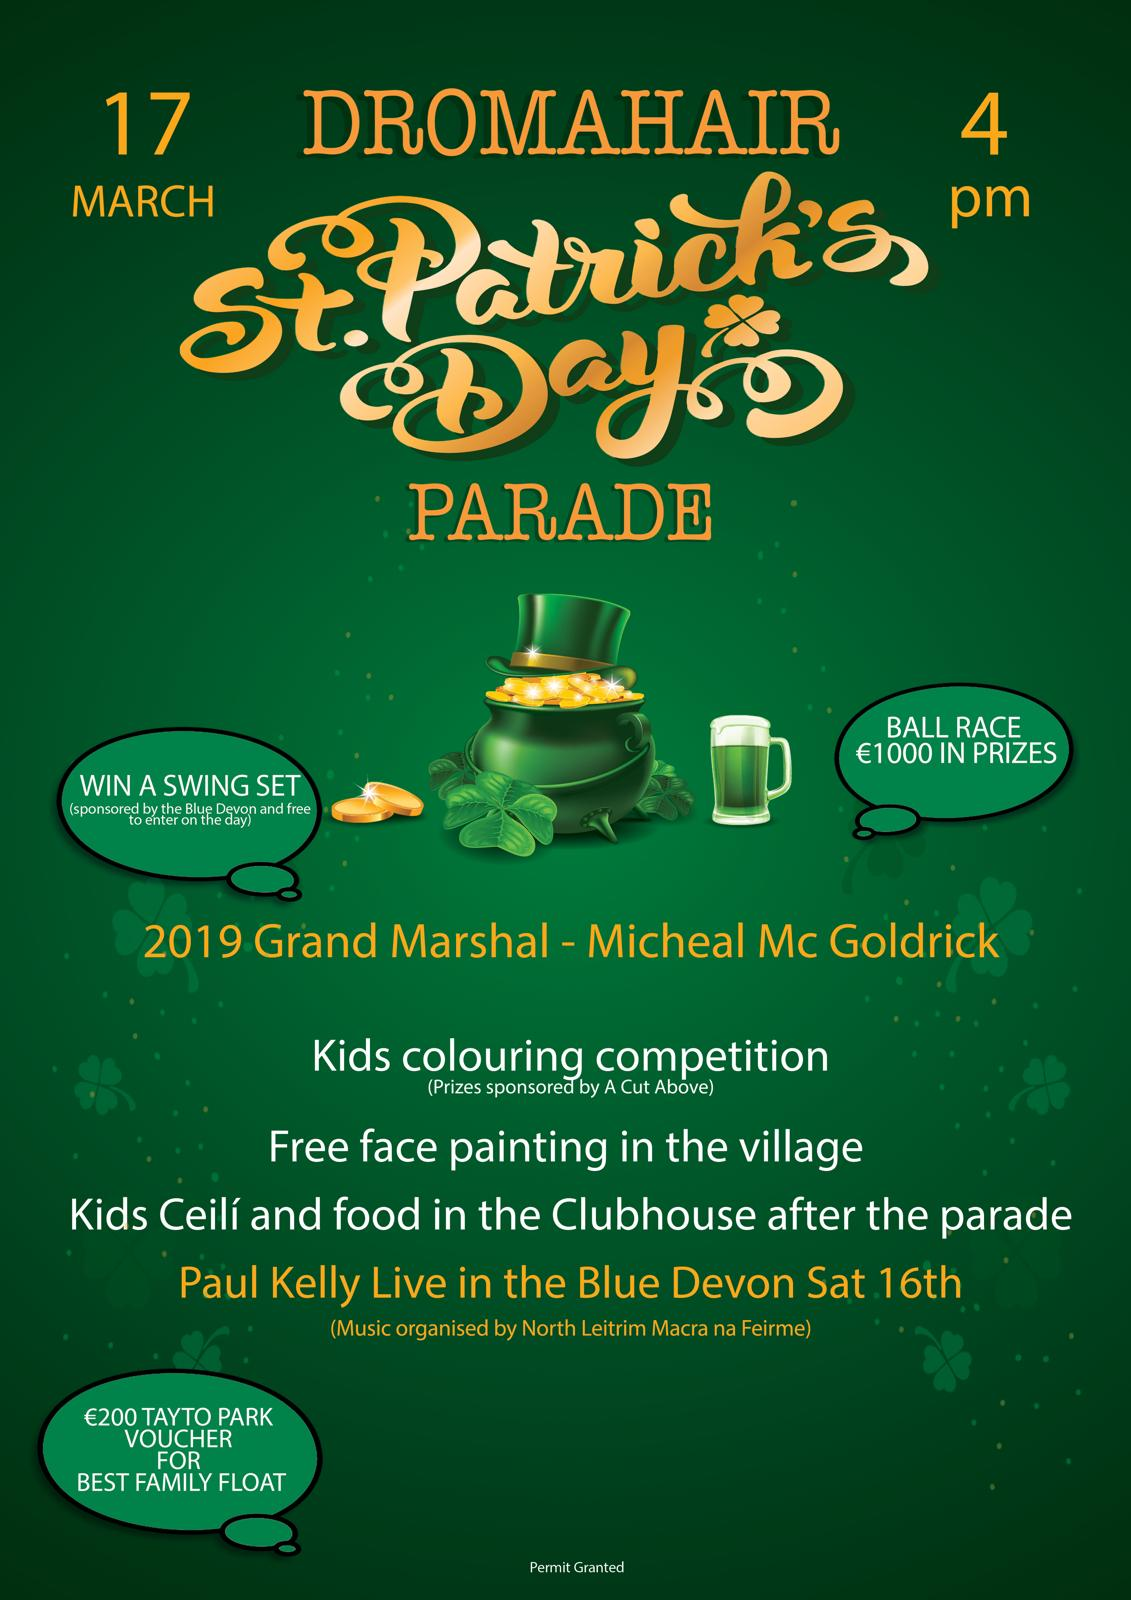 Micheal McGoldrick to lead Dromahair St Patrick's Day parade